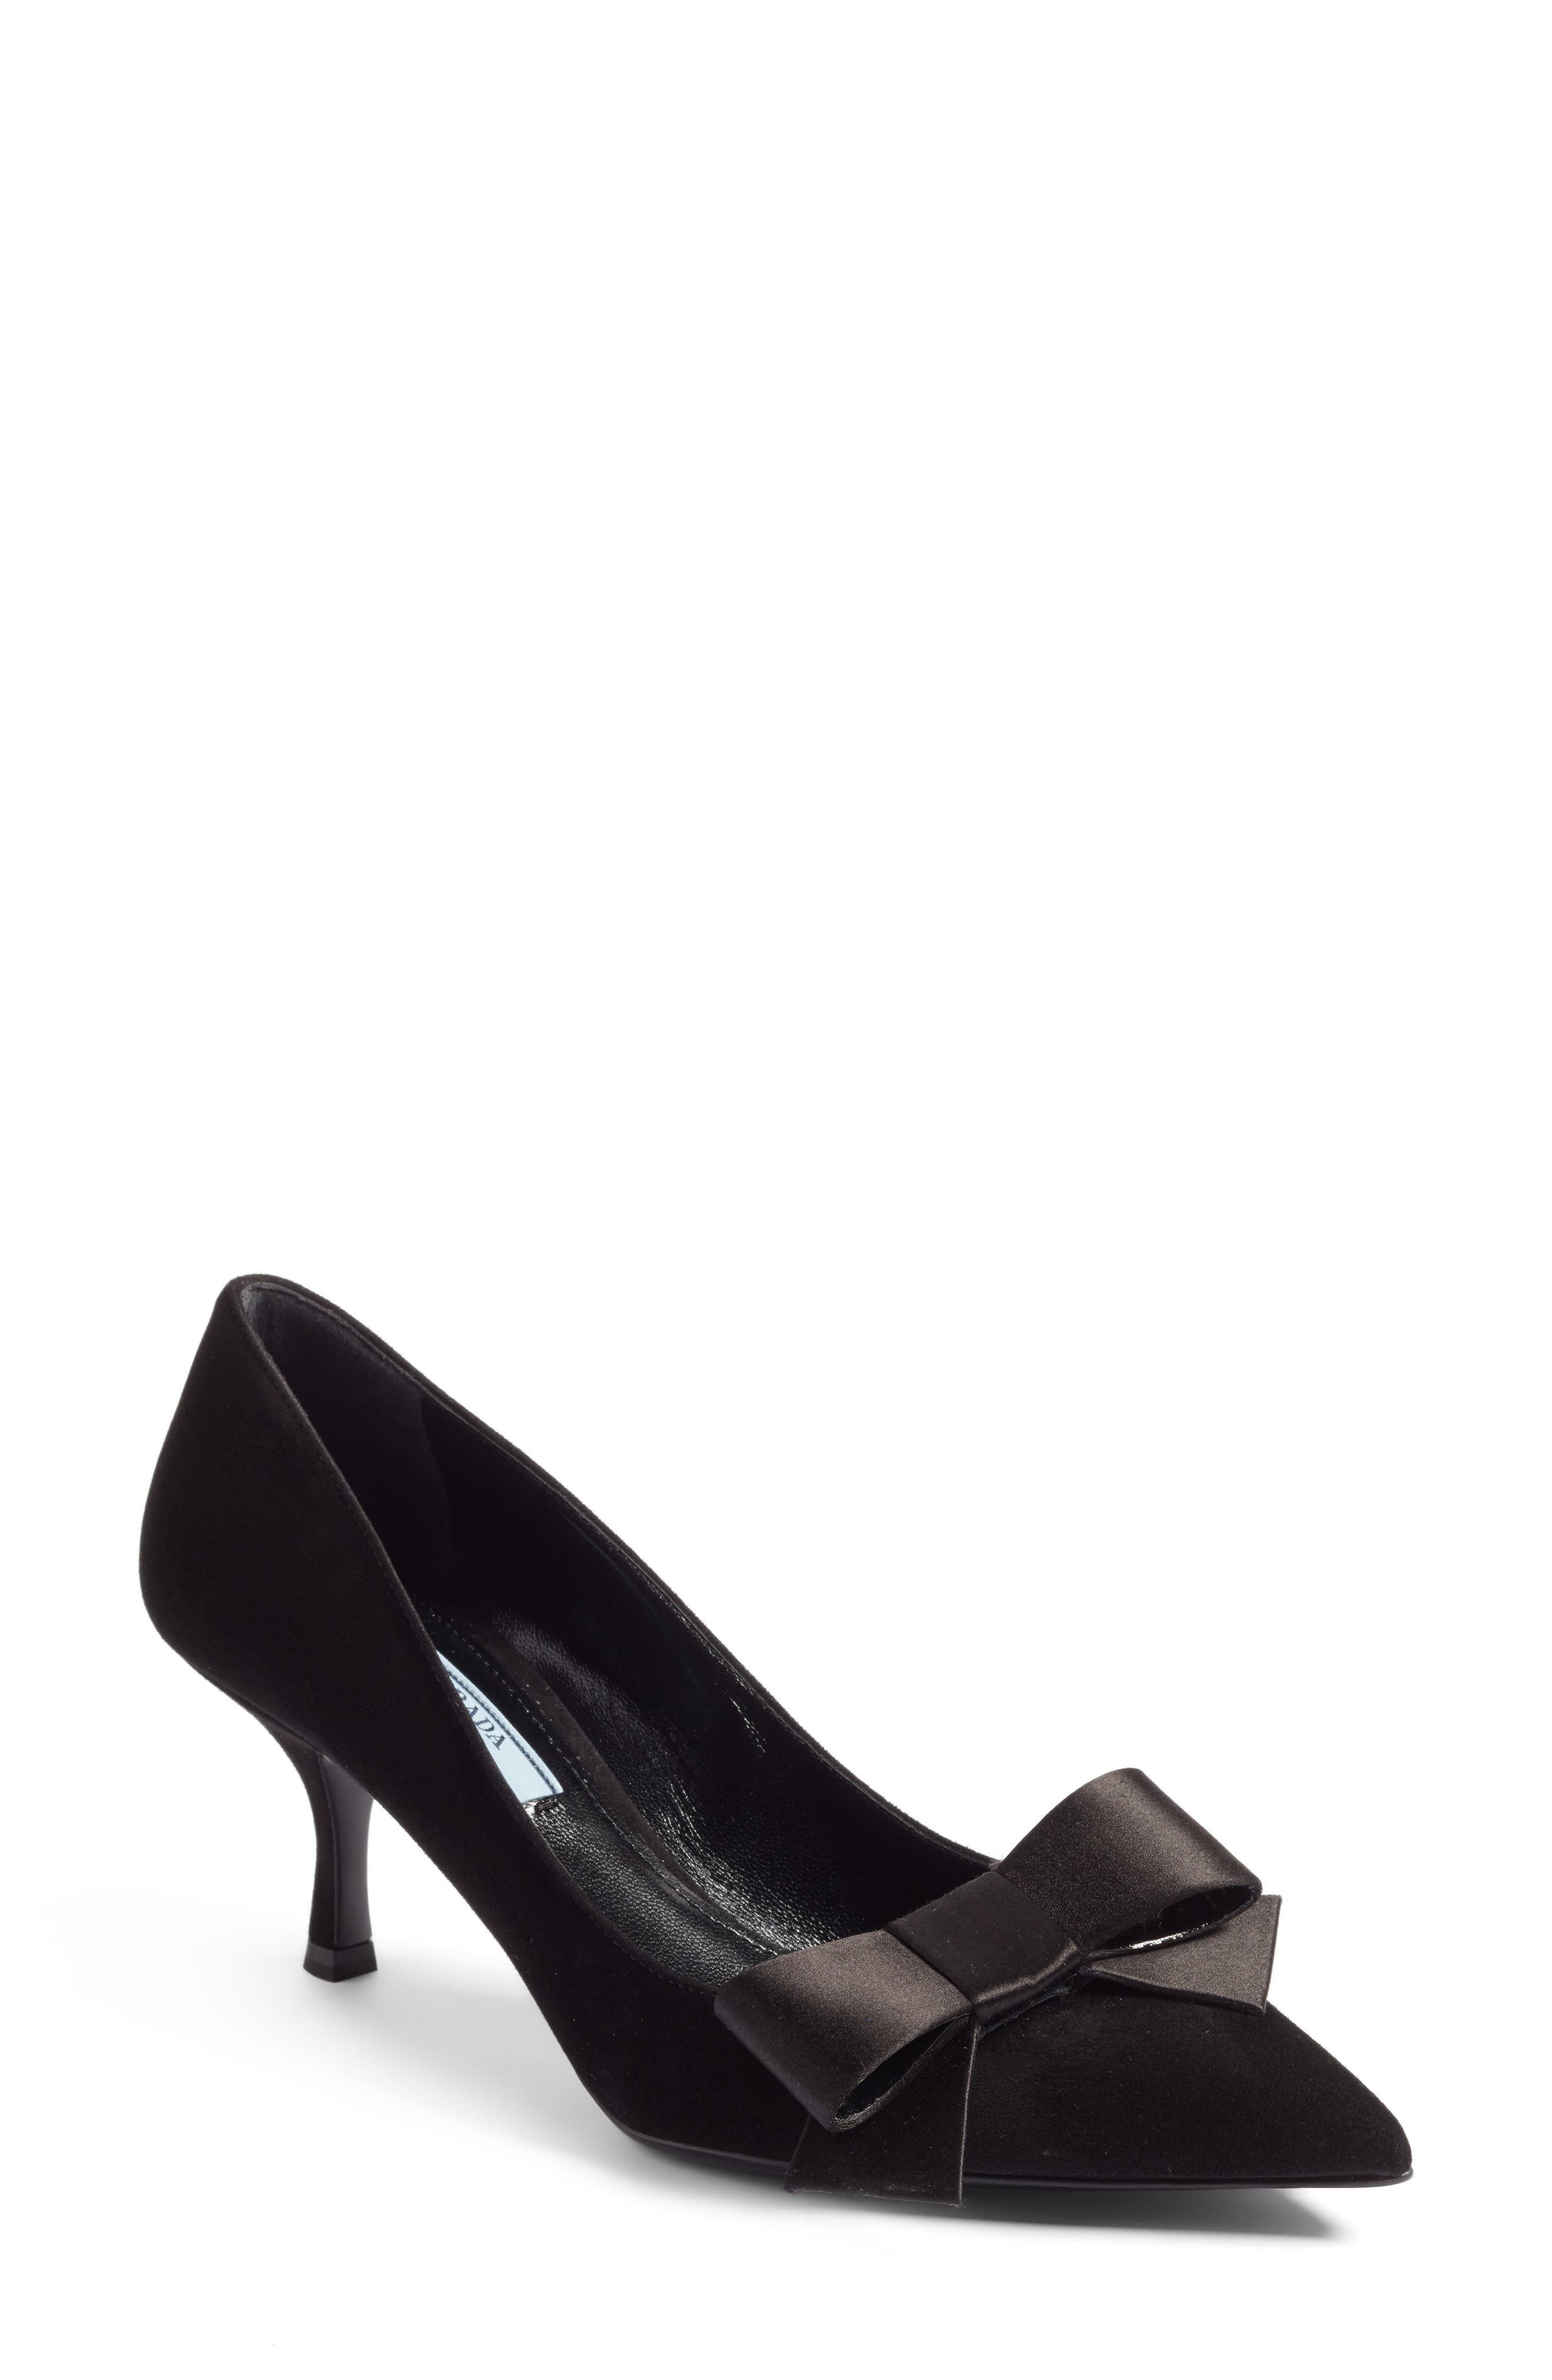 Bow Pointy Toe Pump,                         Main,                         color,